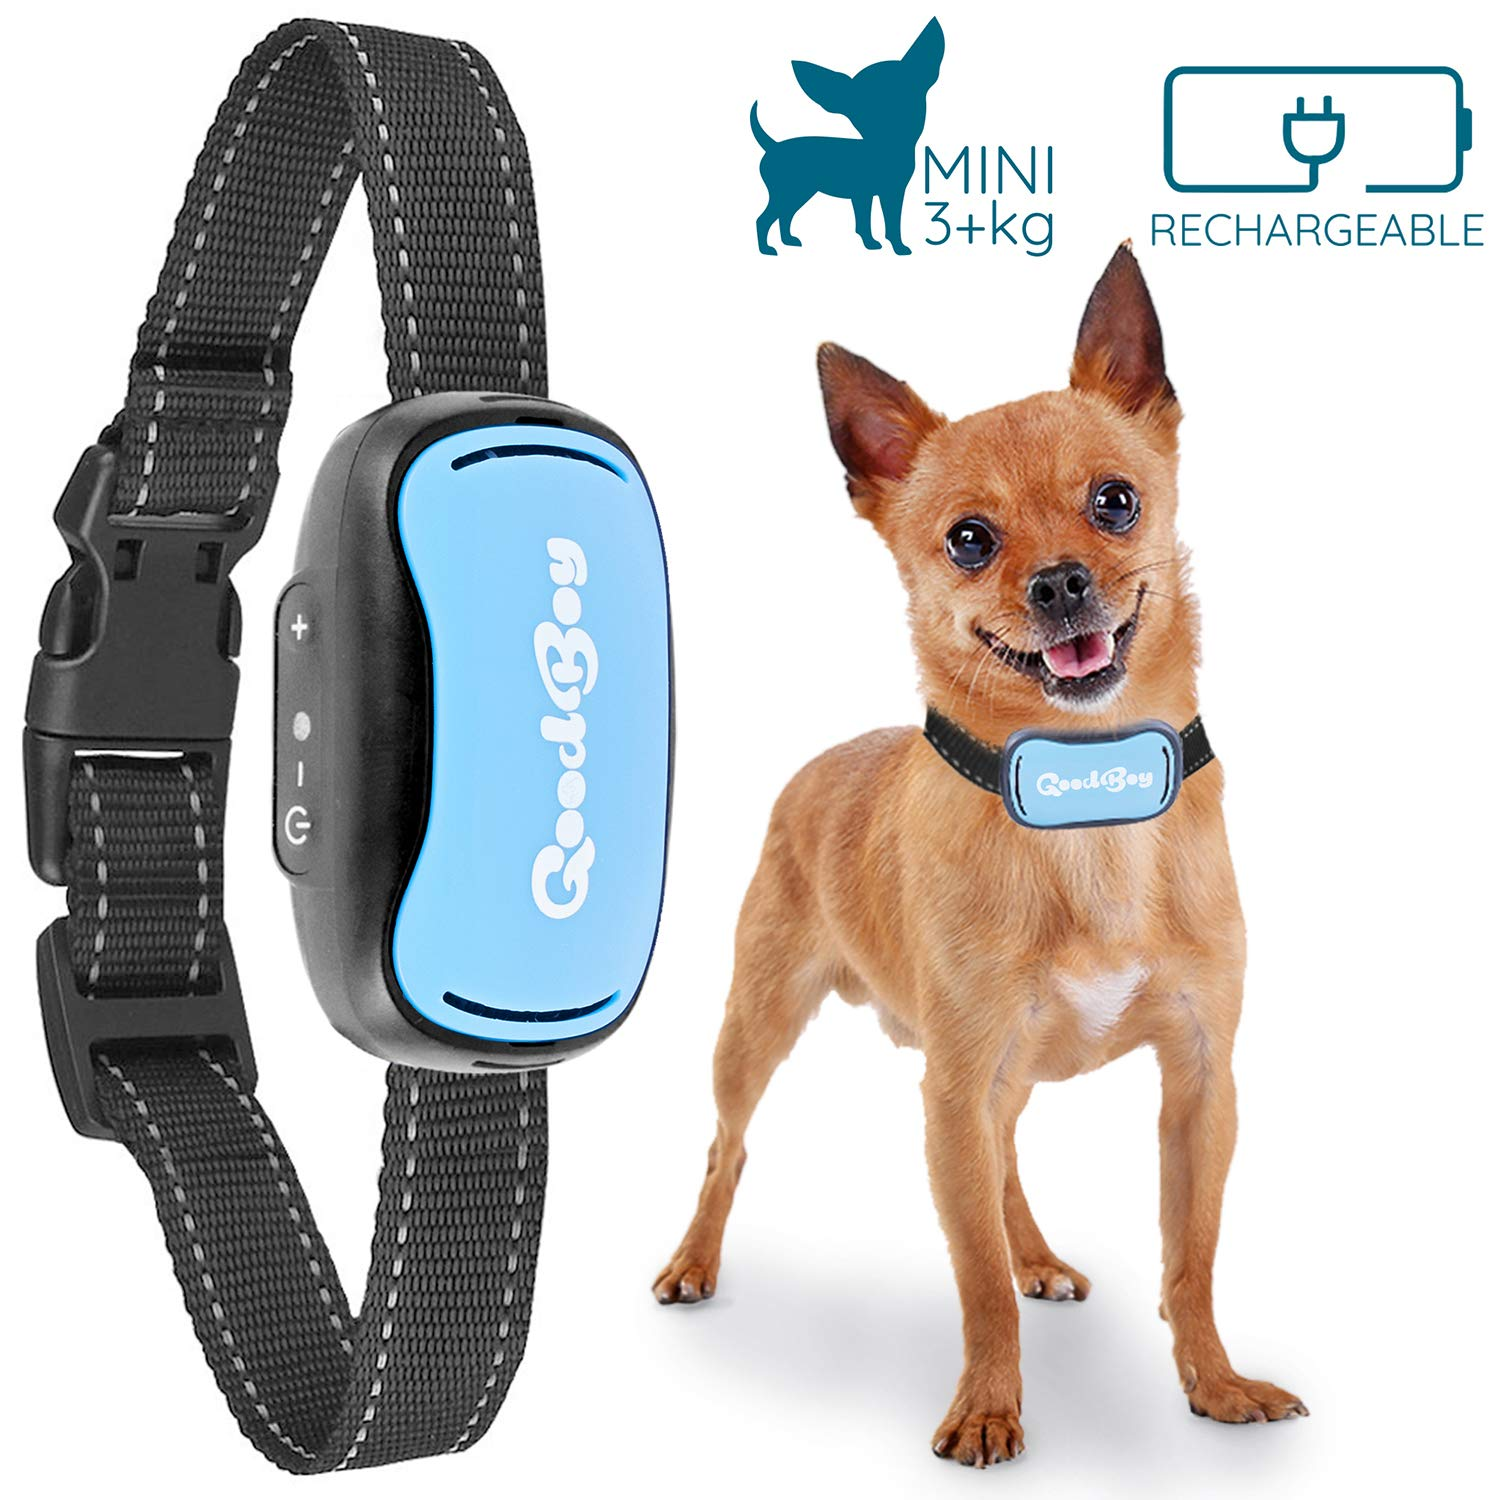 Small Dog Bark Collar by GoodBoy Rechargeable And Weatherproof Vibrating Bark Deterrent for Small And Medium Dogs 3+kg (Blue)